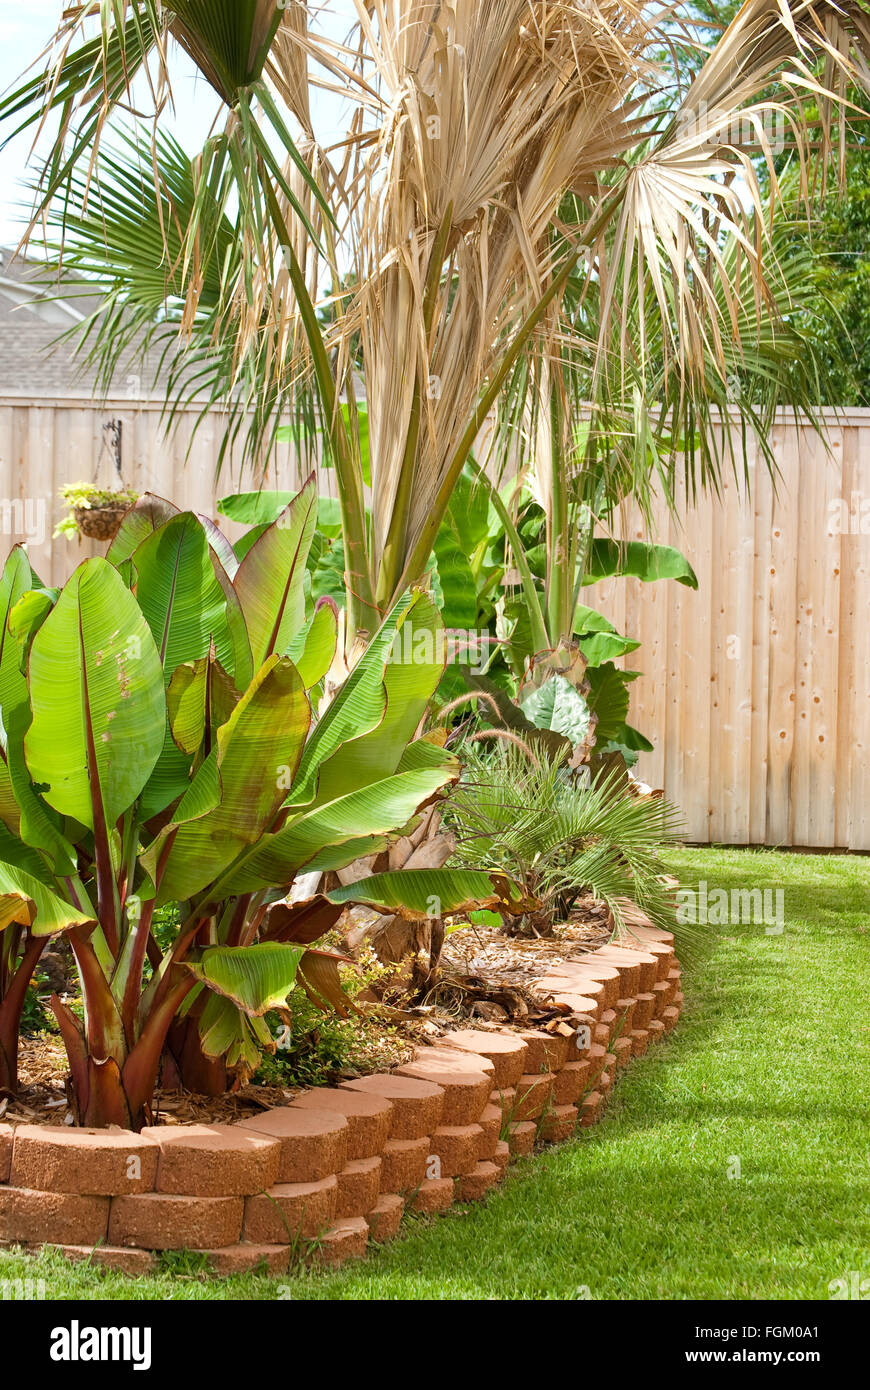 Flower bed in residential backyard with palm and banana trees with